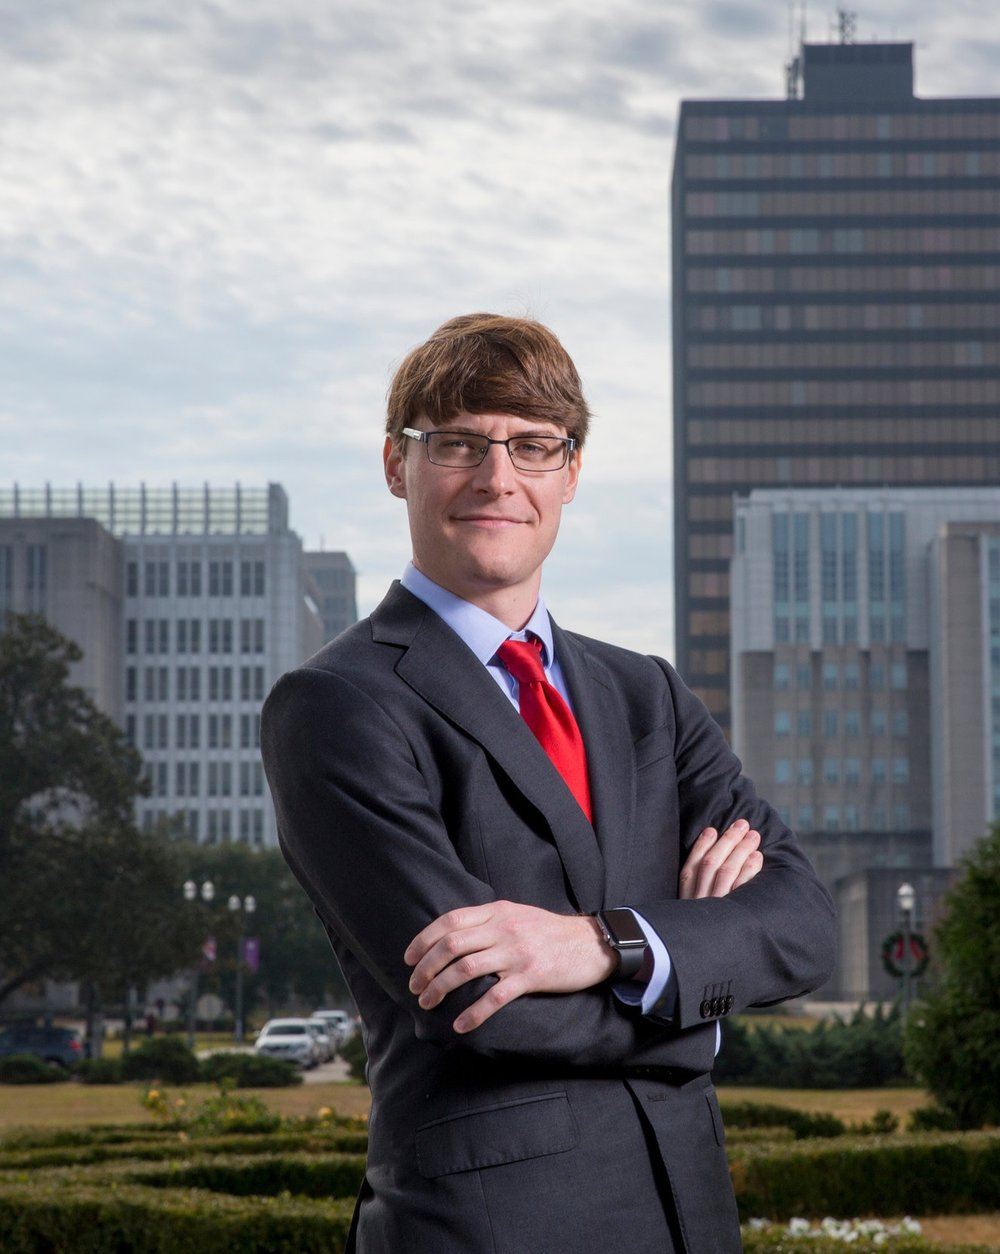 Gregory B. Upton Jr. - I am an Assistant Professor of Research at the Louisiana State University Center for Energy Studies. My research interests are related to the analysis of economic, environmental and public policy issues in the energy industry.